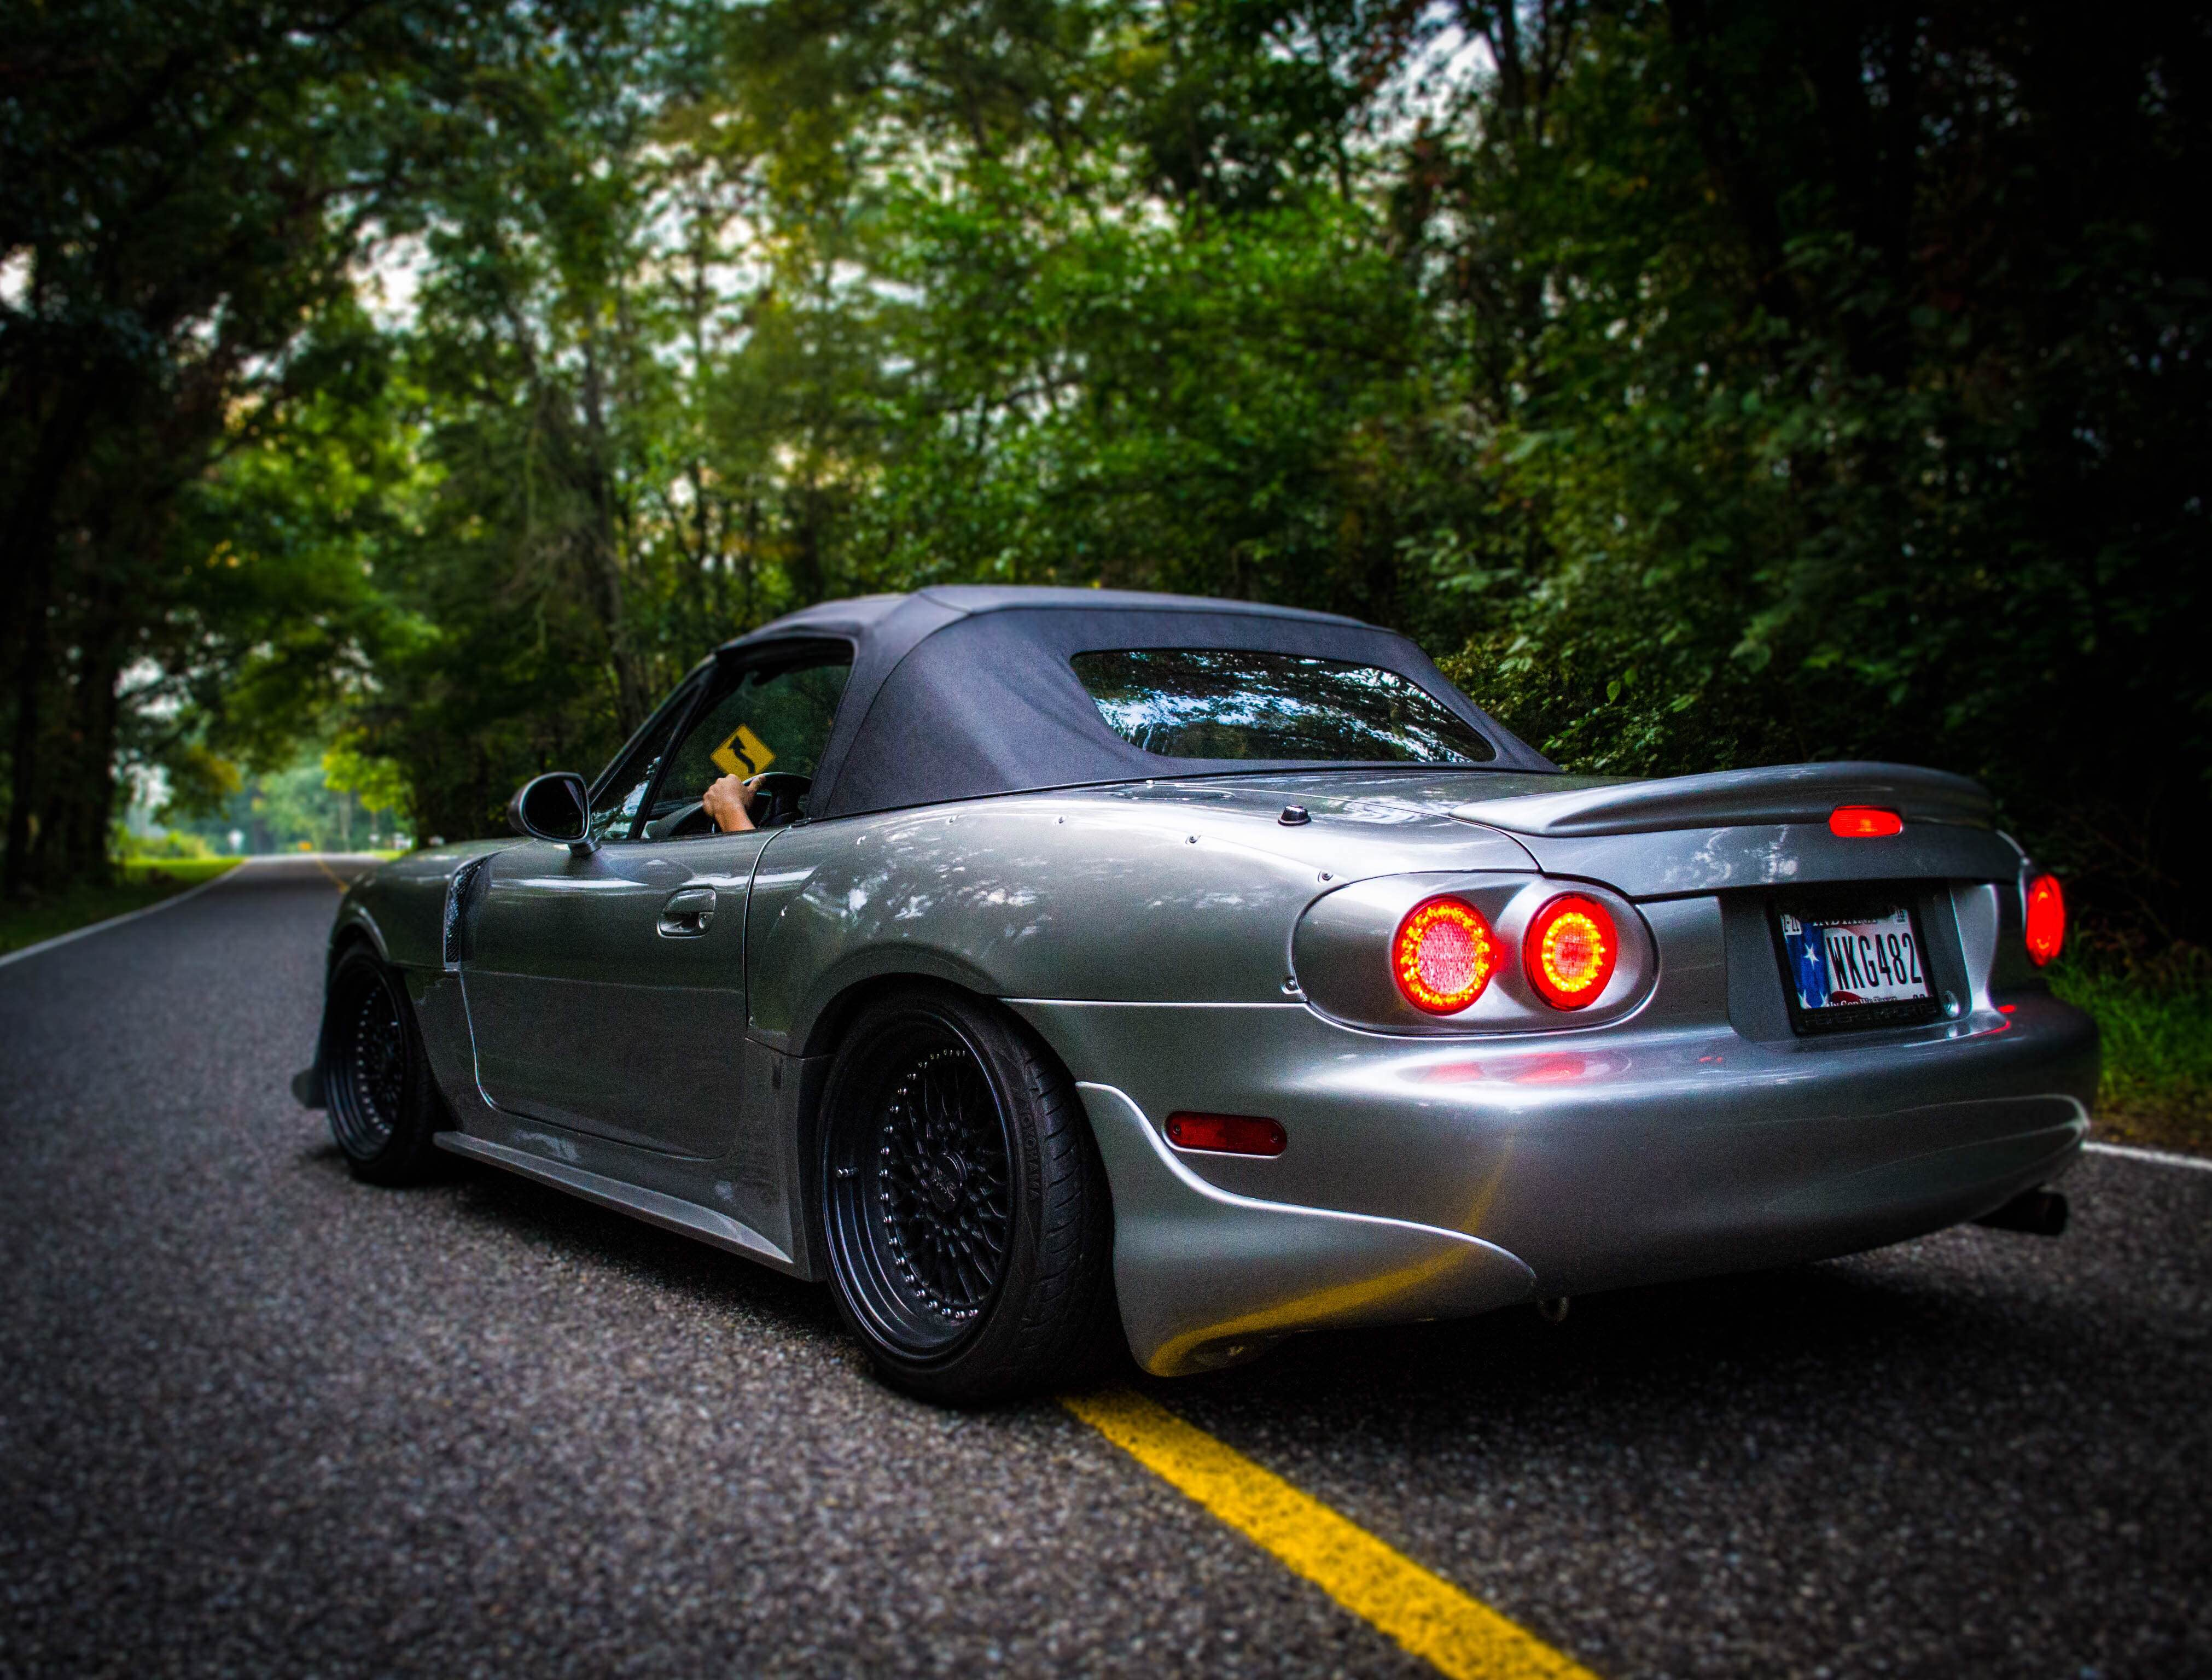 re-gt style bodykit - the ultimate resource for mazda miata parts